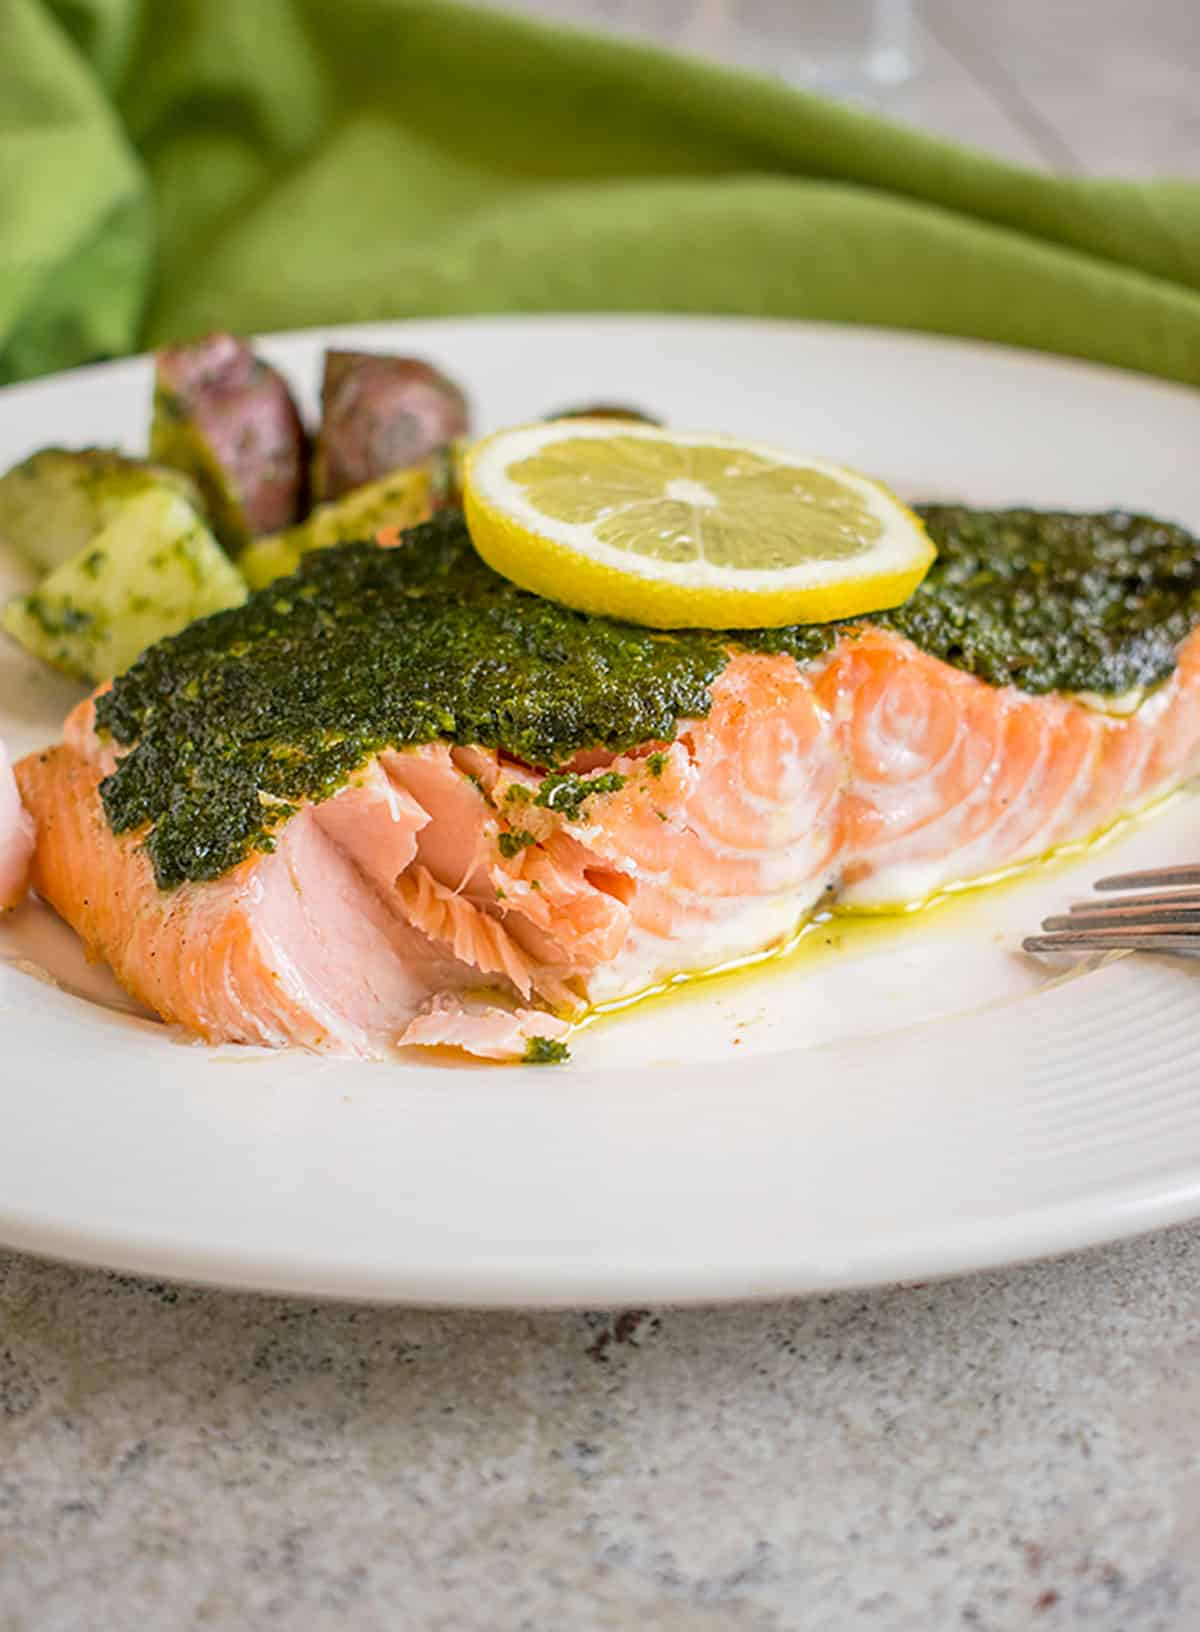 Photo of plate with pesto salmon and potatoes